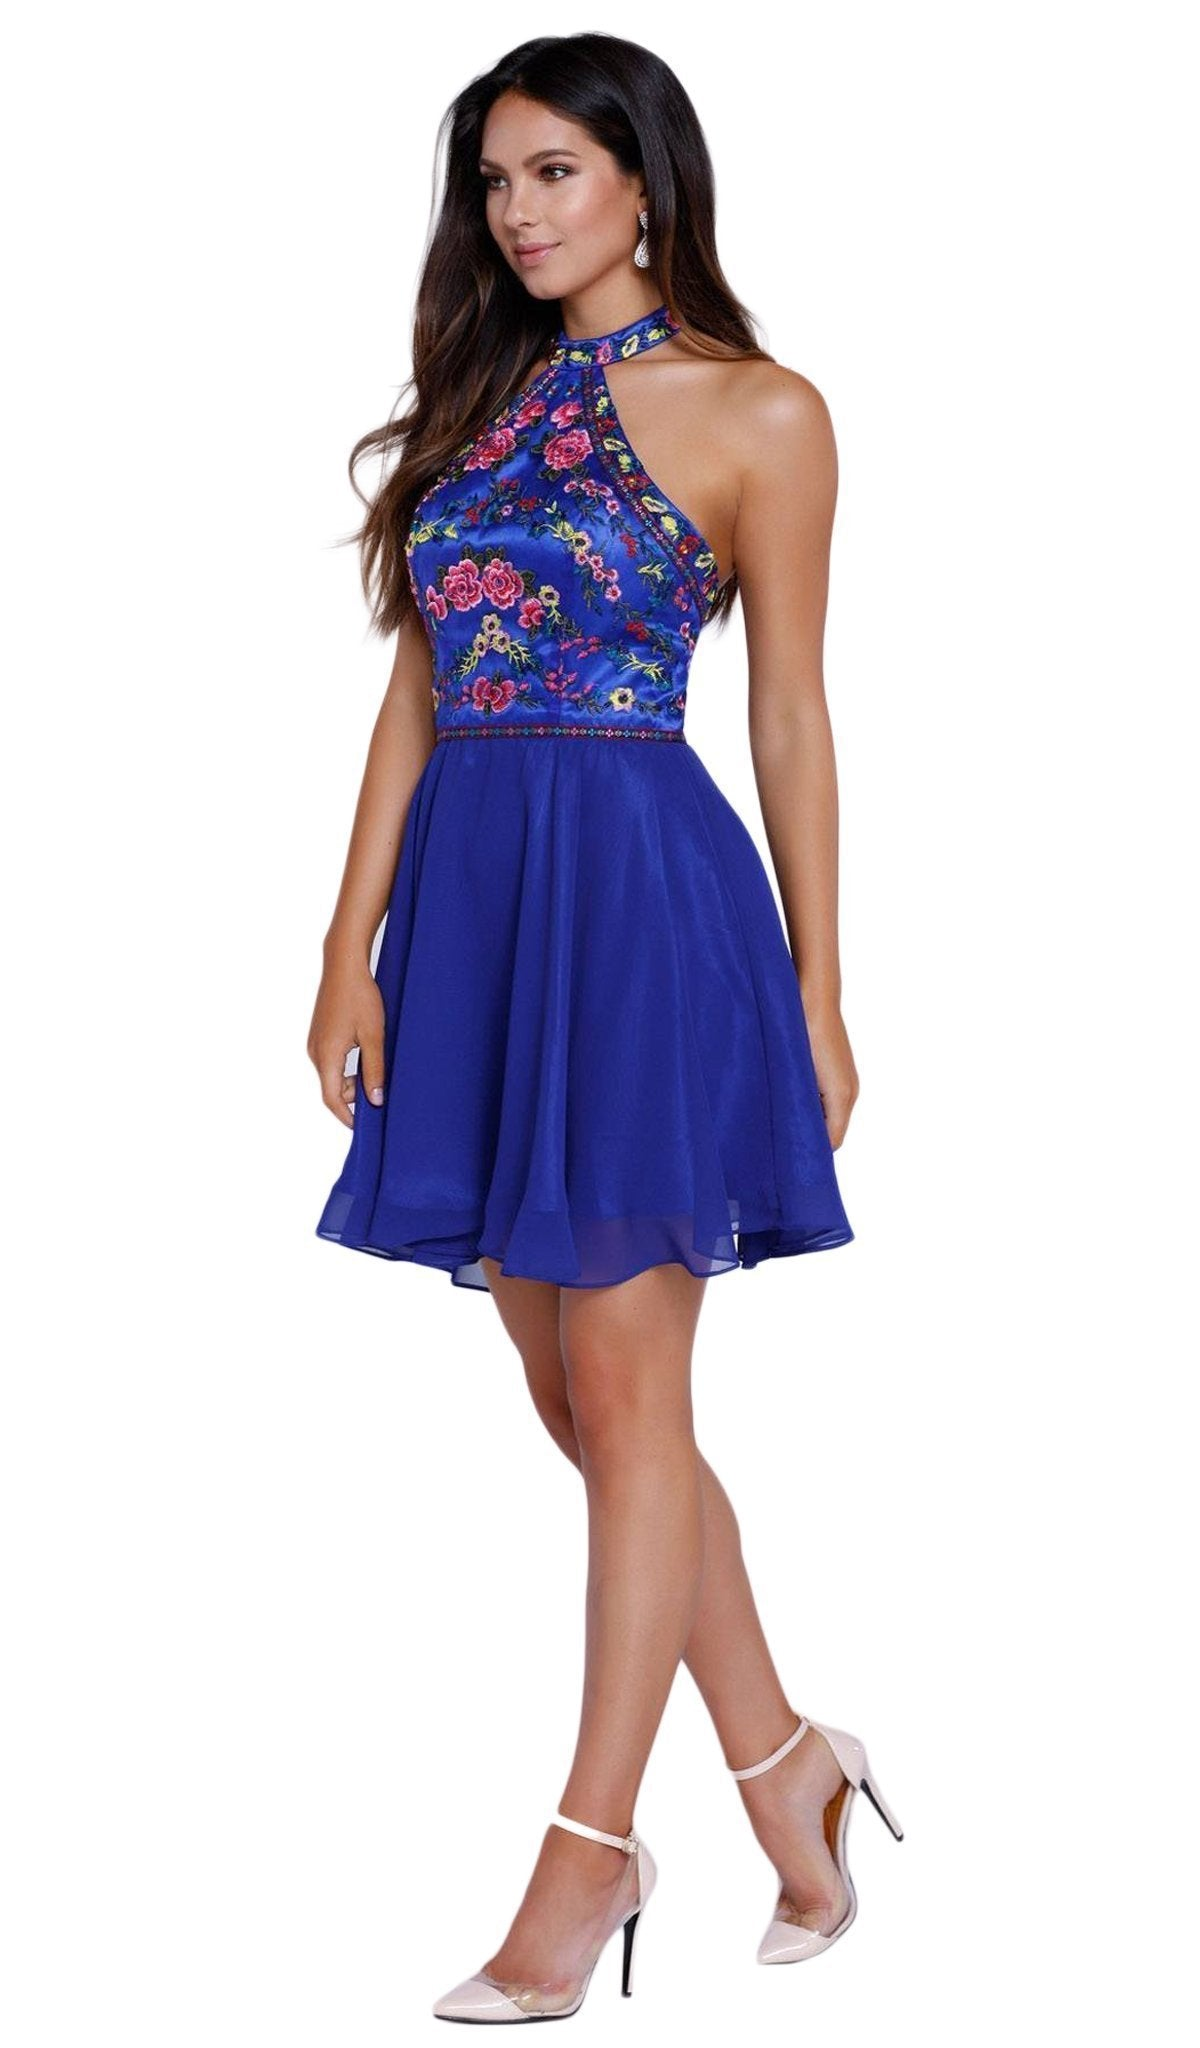 Nox Anabel - Embroidered Halter Chiffon A-line Dress 6235SC